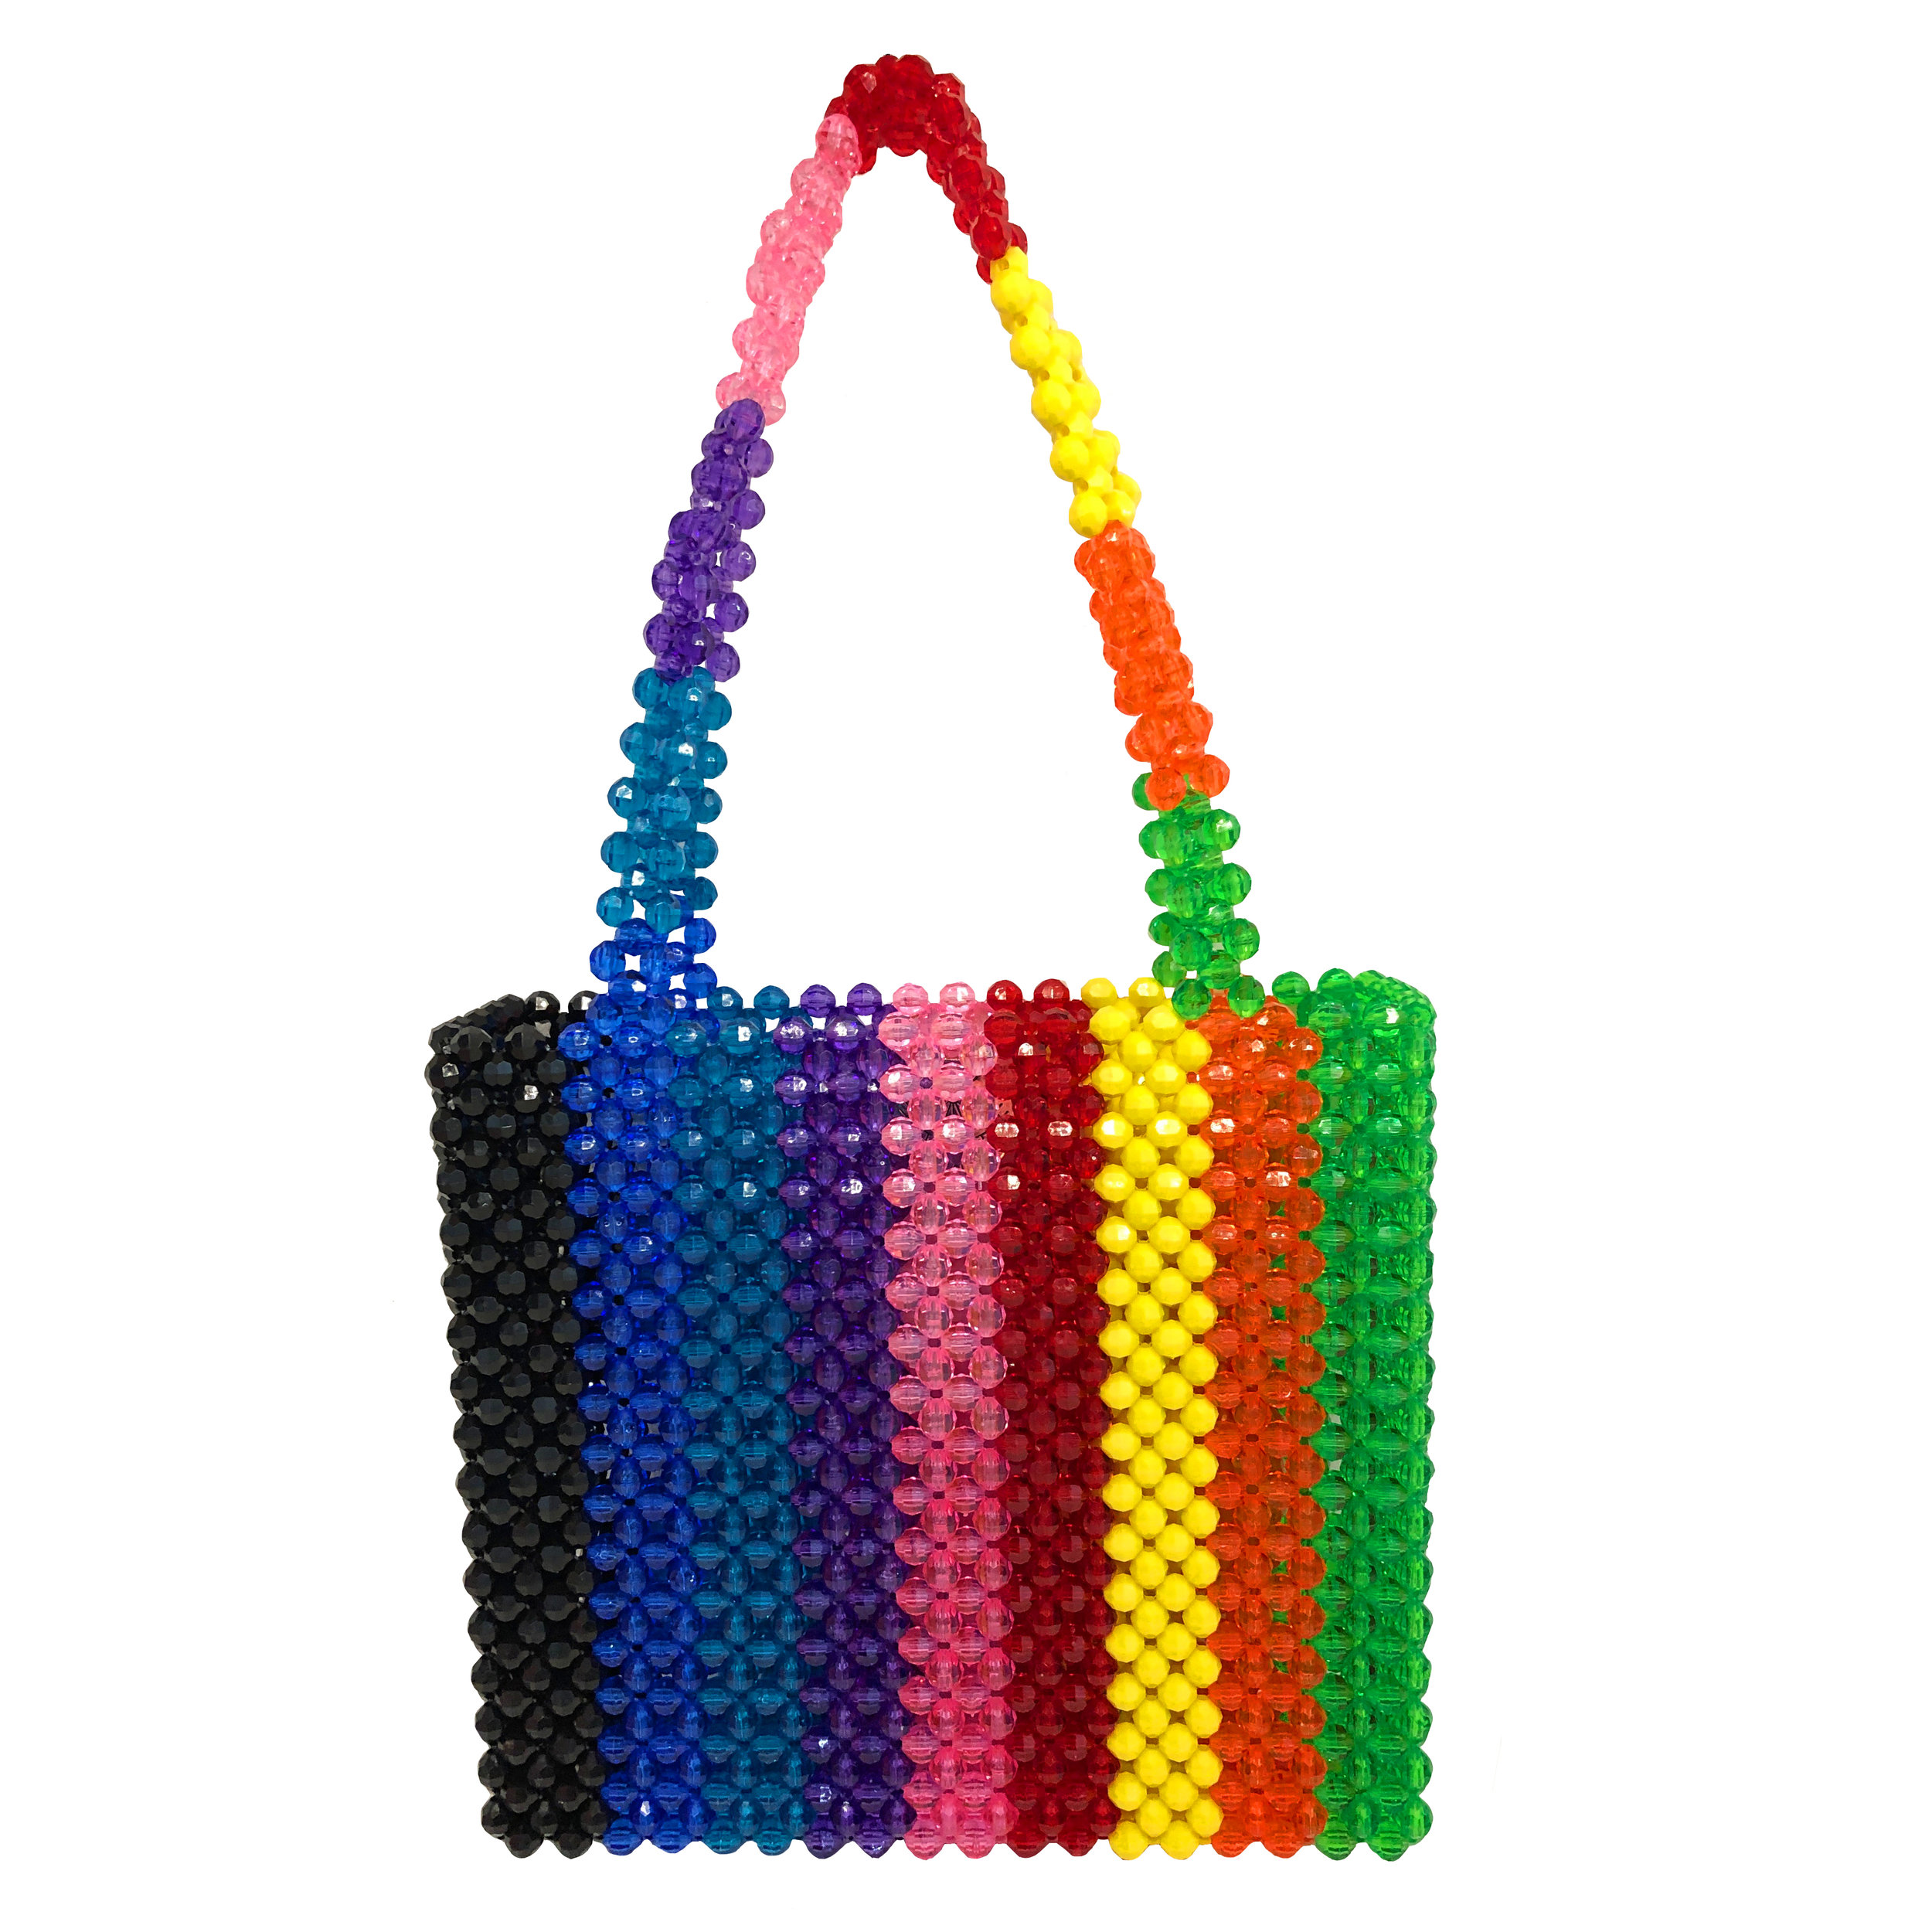 Rainbow Bag - $360Imagine dropping a big ol' sack of jelly beans on the ground. End scene.That's the inspo behind this bag. And in fairness to all flavors, we even included the dreaded licorice, because one day, I will learn to understand why it's a thing.released in very limited quantity, sign up below to be notified FIRST!